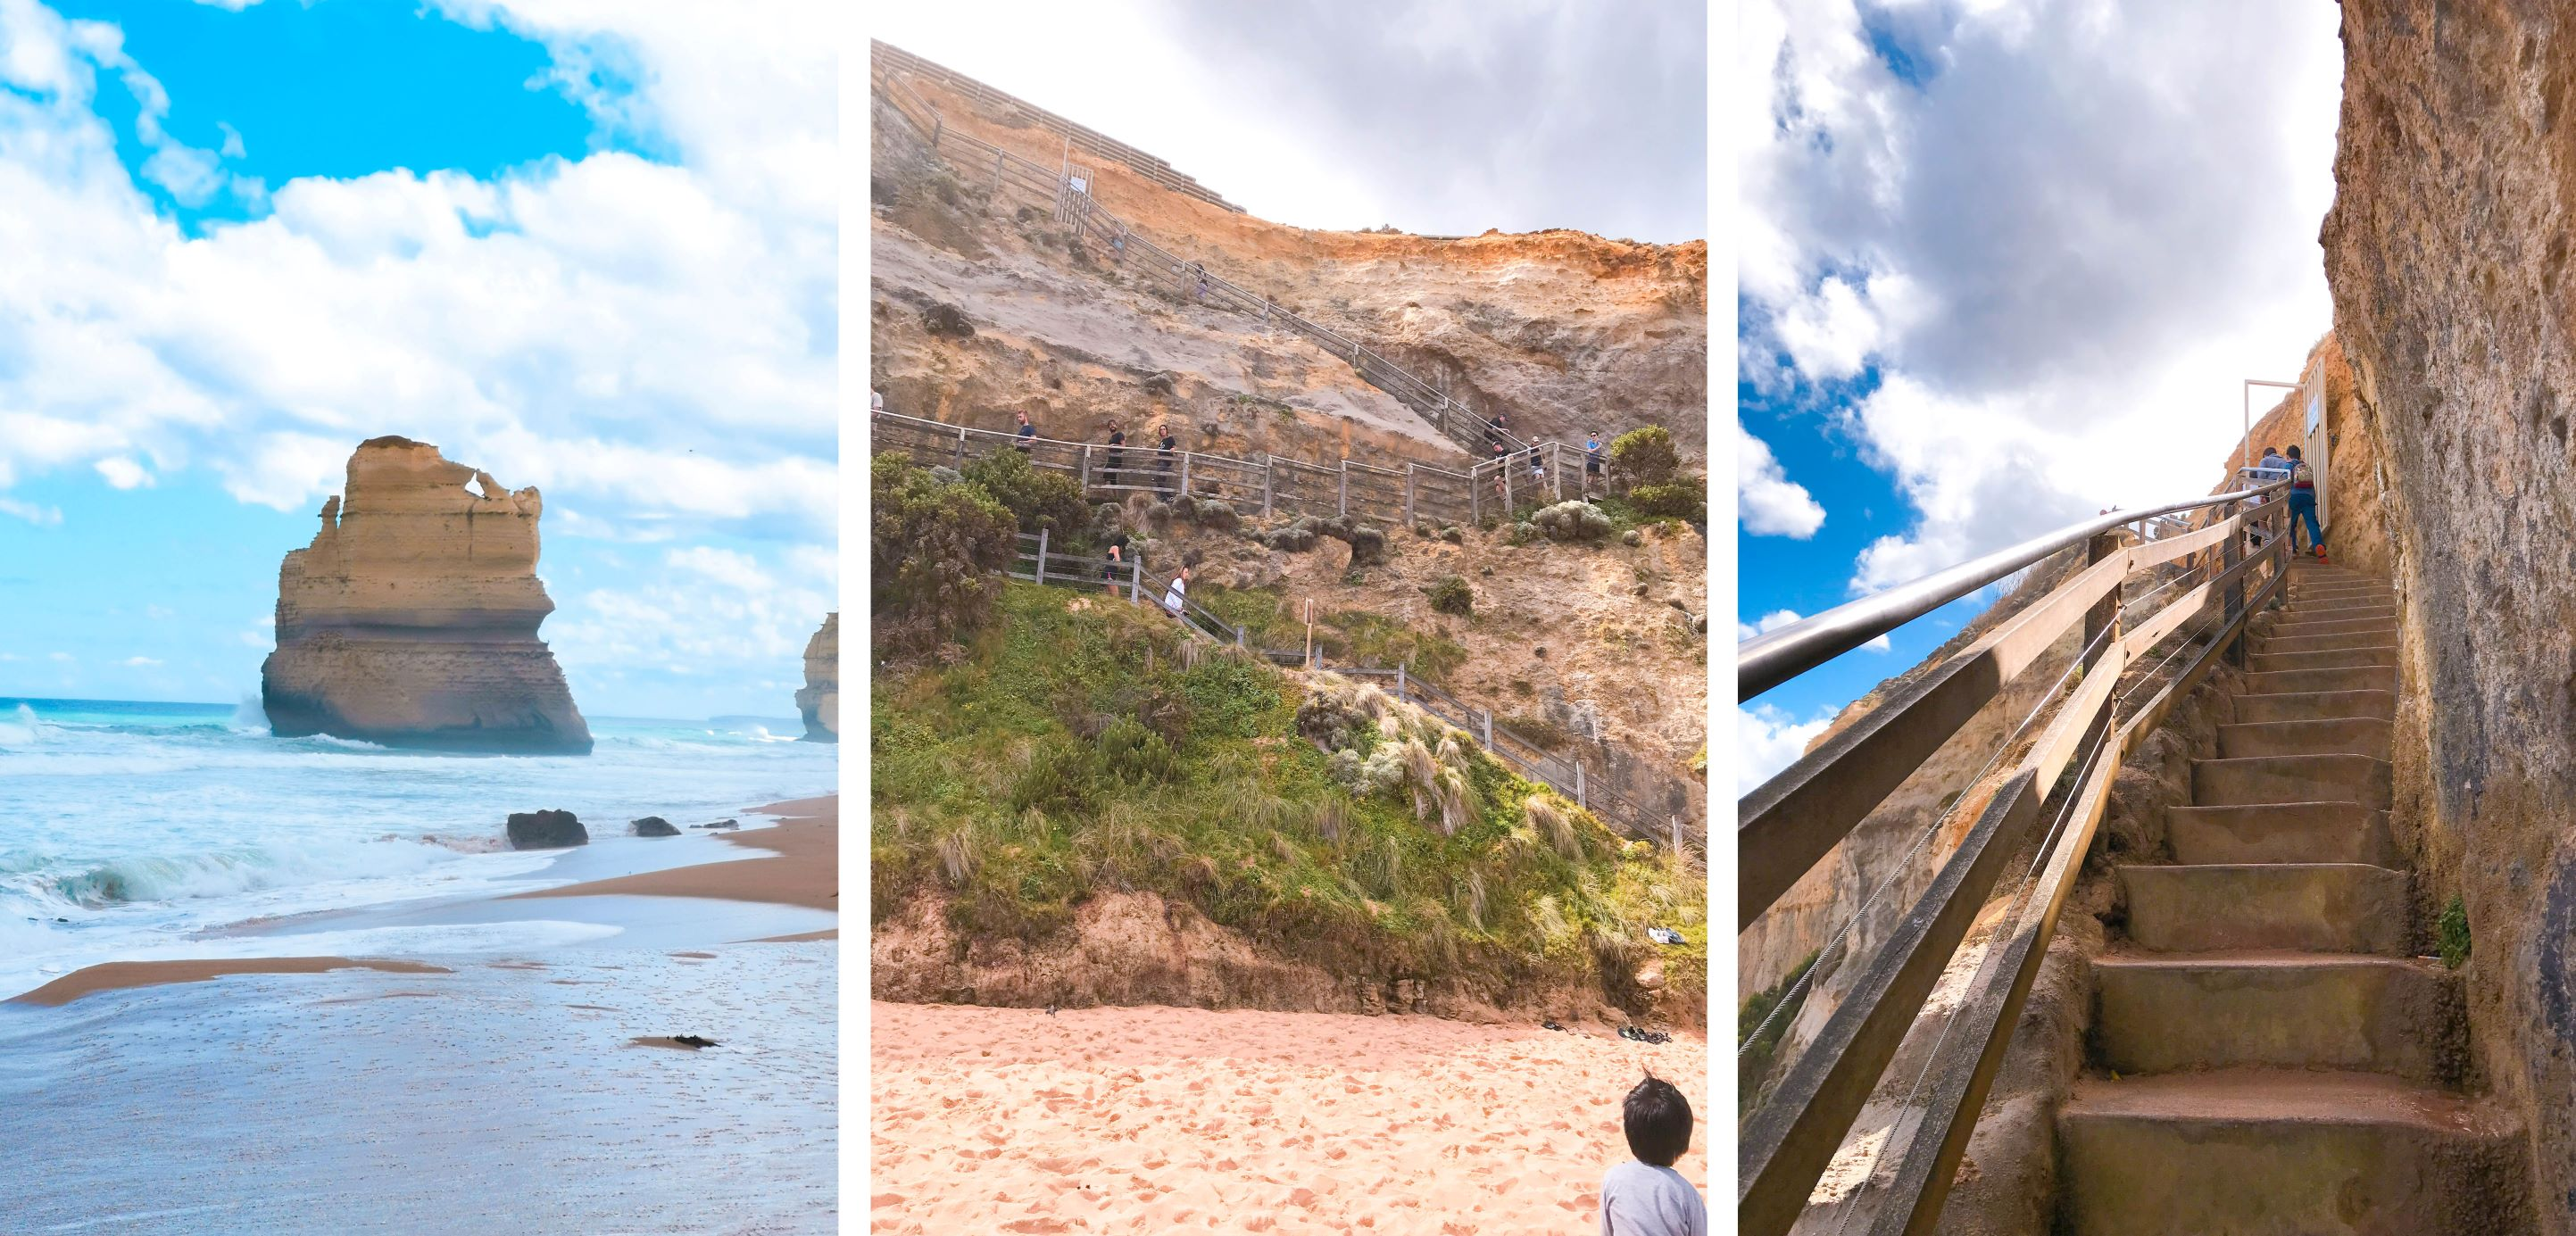 The attractions of the great ocean road